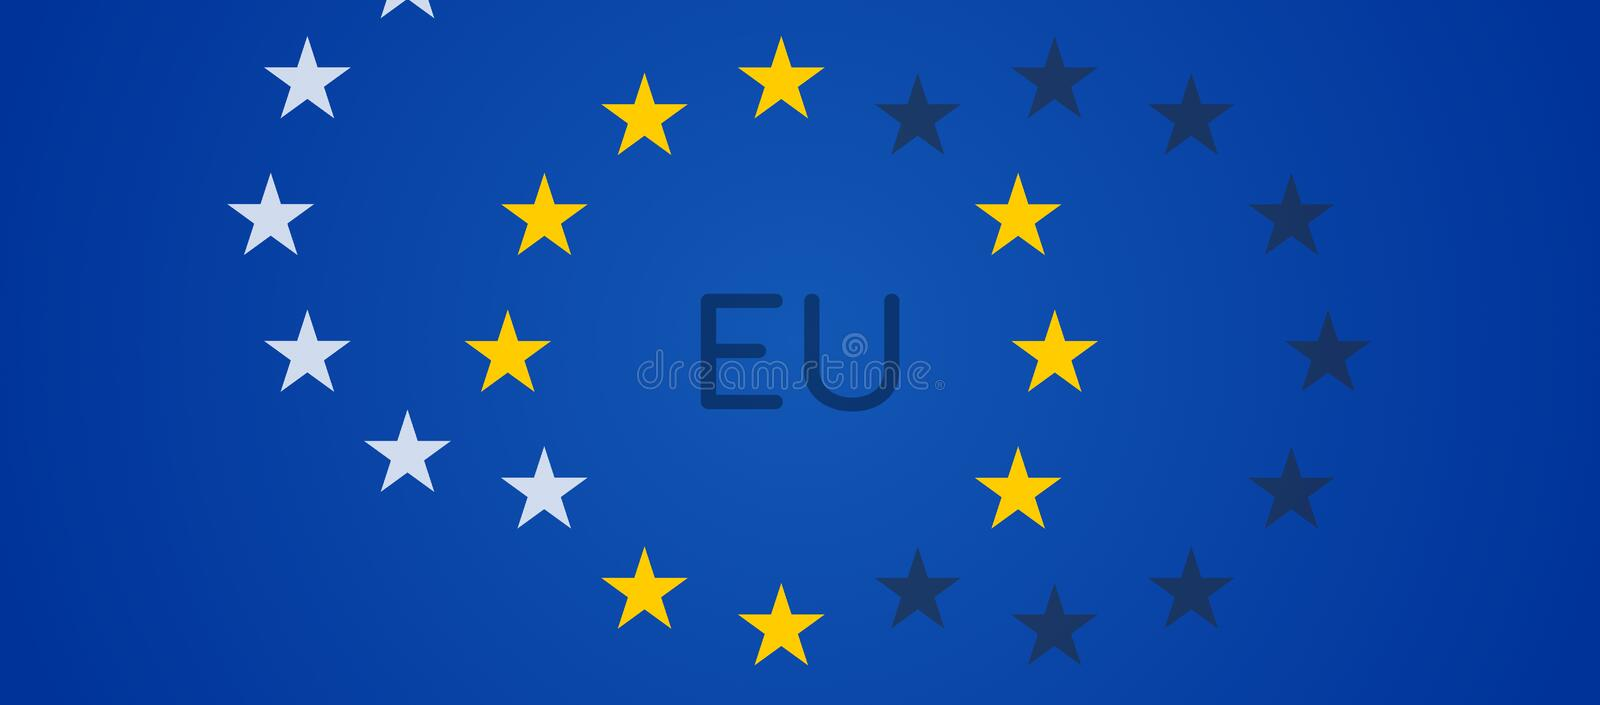 Creative abstract stars of the flag of Europe background with yellow white and dark stars 3d-illustration royalty free illustration